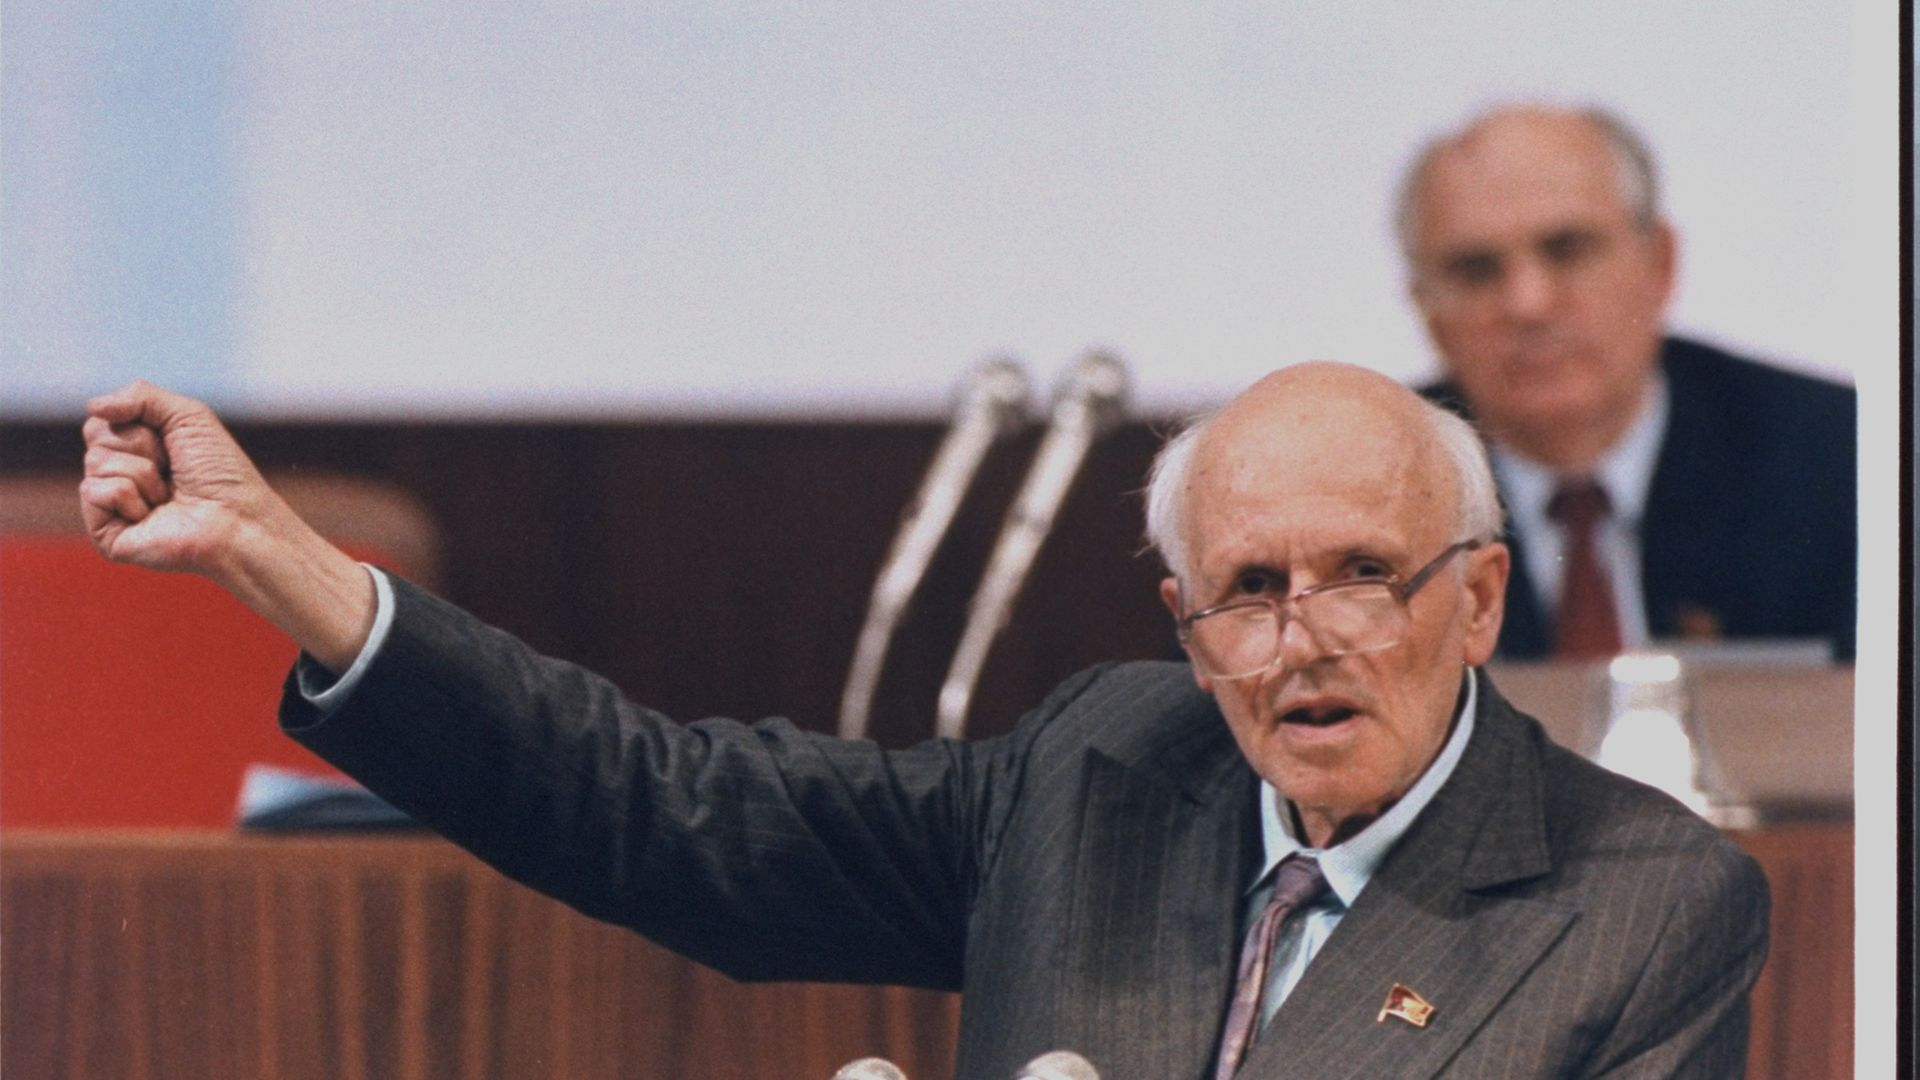 Andrei Sakharov, a few days before his death, during a session of the Congress of People's Deputies, with Mikhail Gorbachev listening behind - Credit: The LIFE Images Collection via G